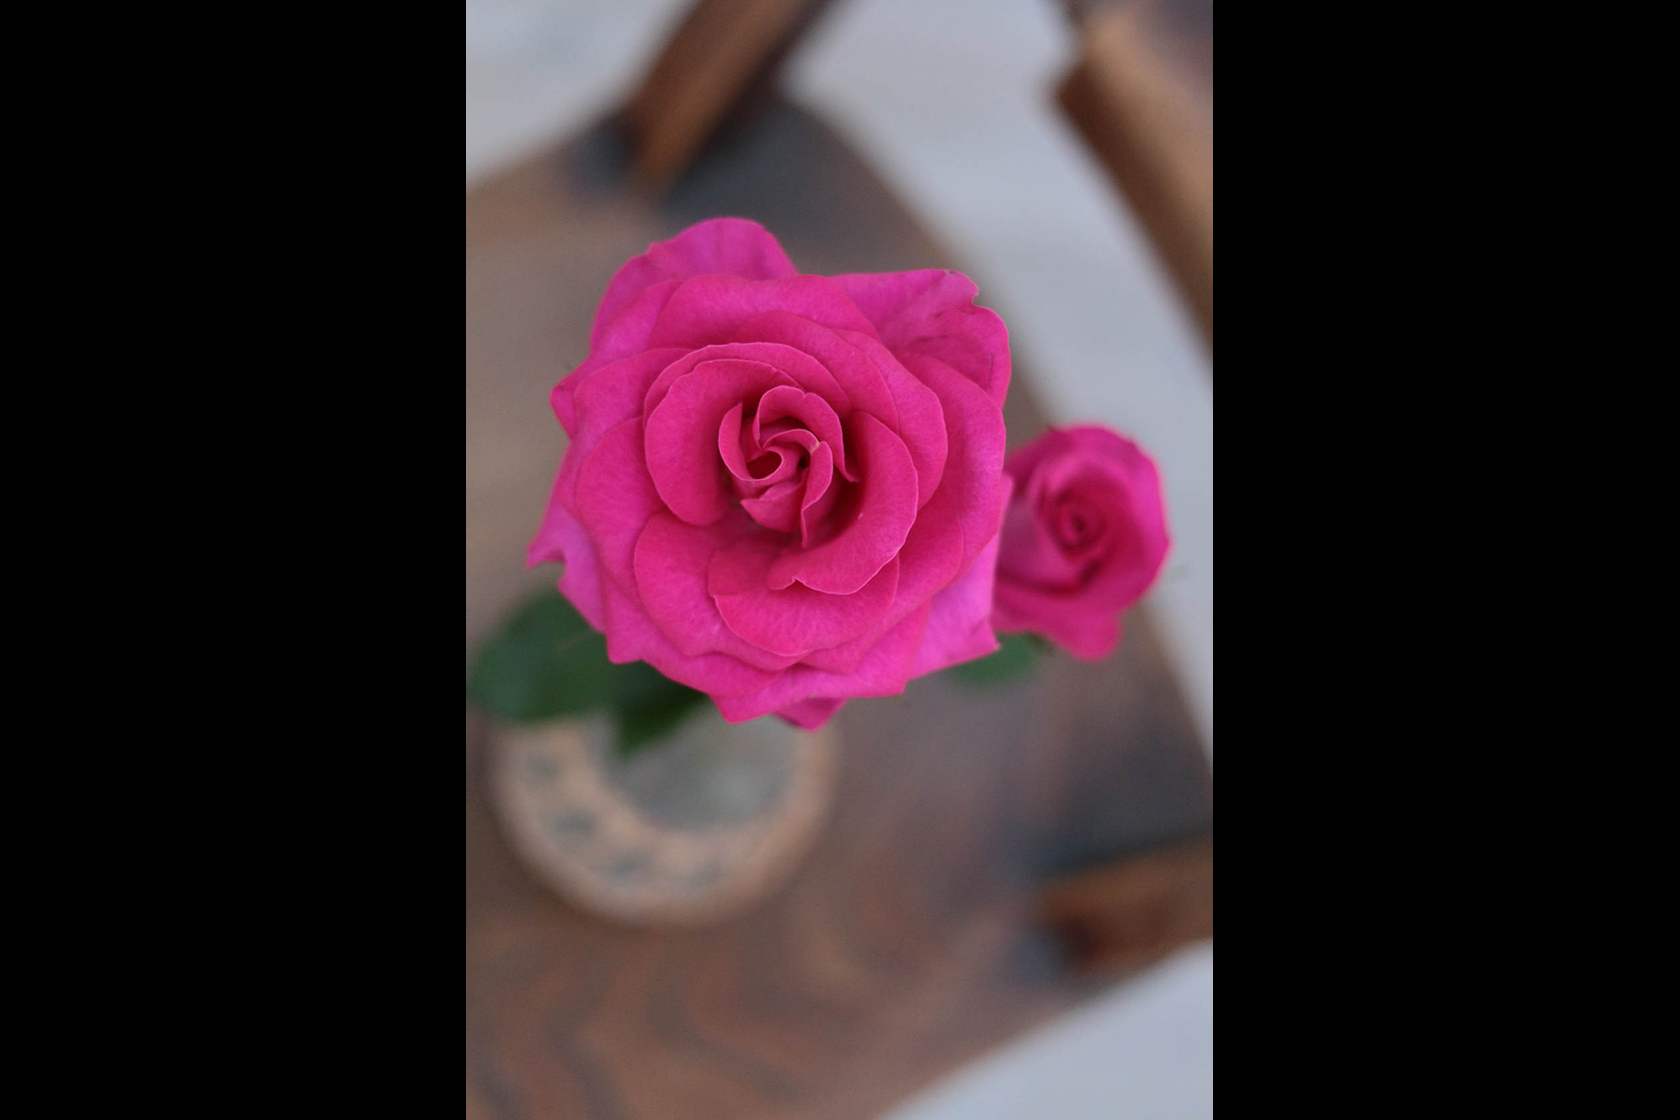 Pink rose taken with Canon EOS 70D DSLR camera